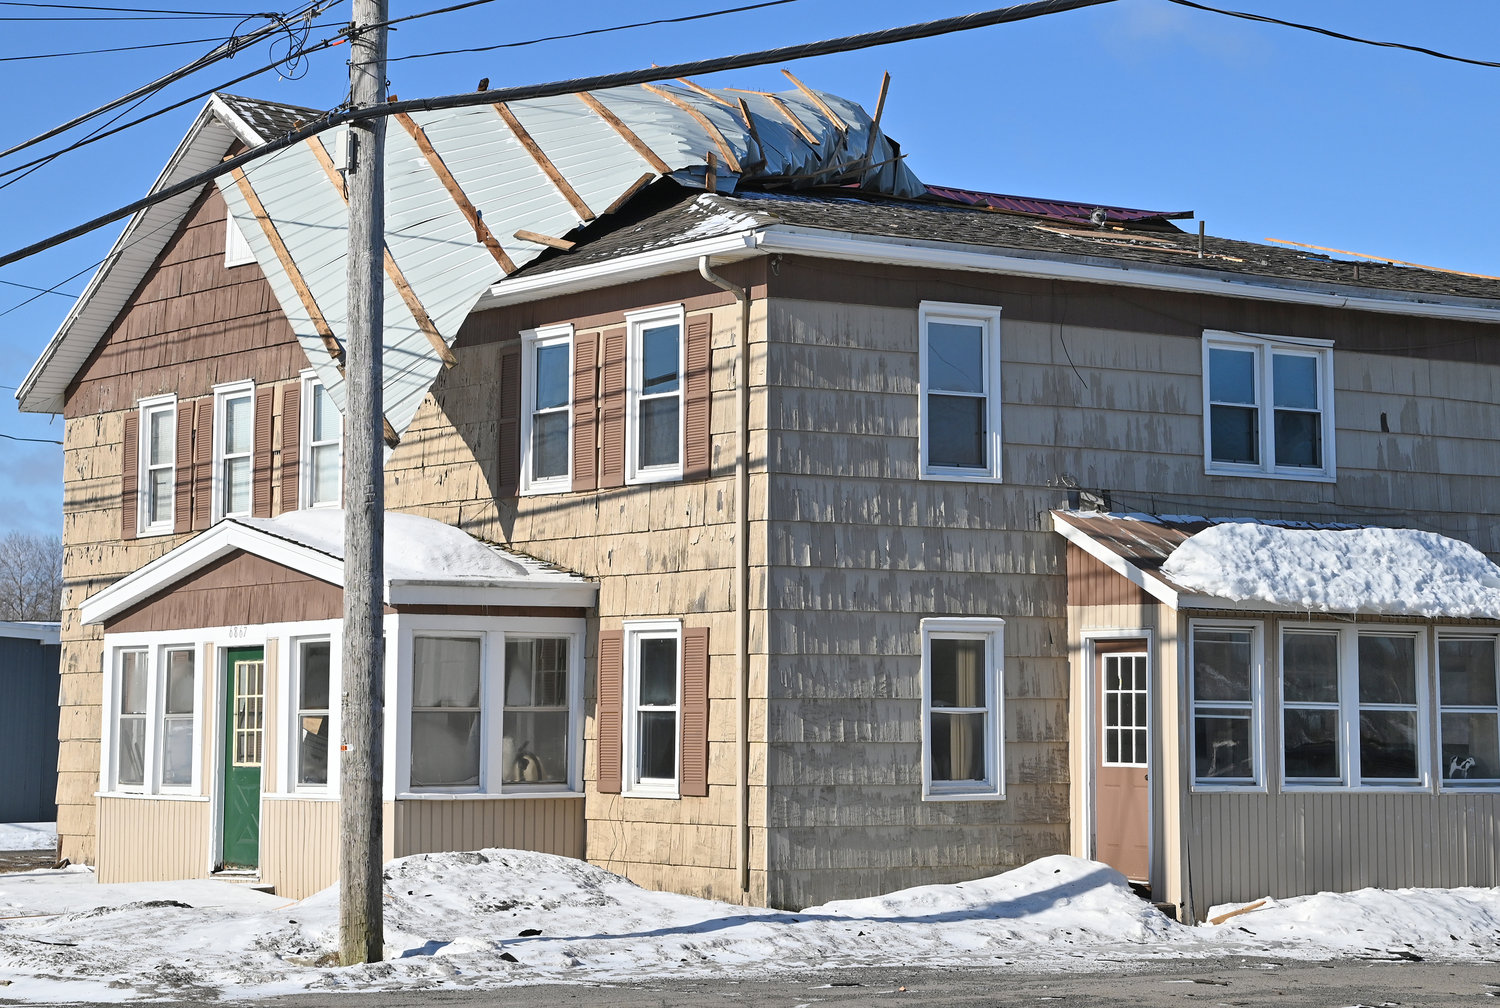 HIGH WINDS RIP ROOF — A sheet of metal roofing hangs off the top of 6866 S. James St. Tuesday, following Monday's heavy winds. Fire officials said no one was injured. They added that a second piece of metal roofing was blown into the roadway.